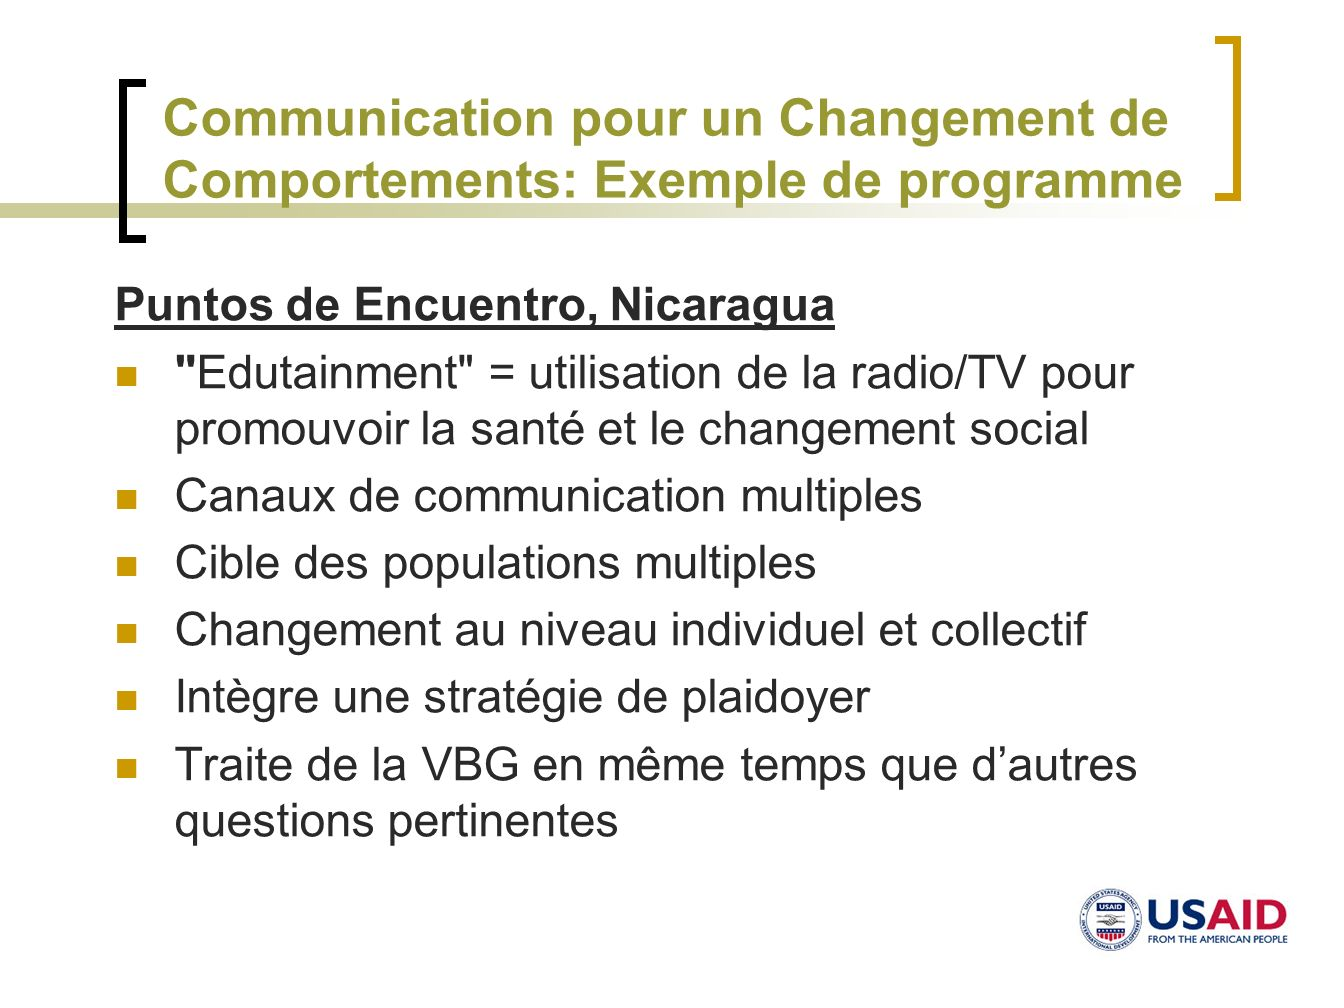 Communication pour un Changement de Comportements: Exemple de programme